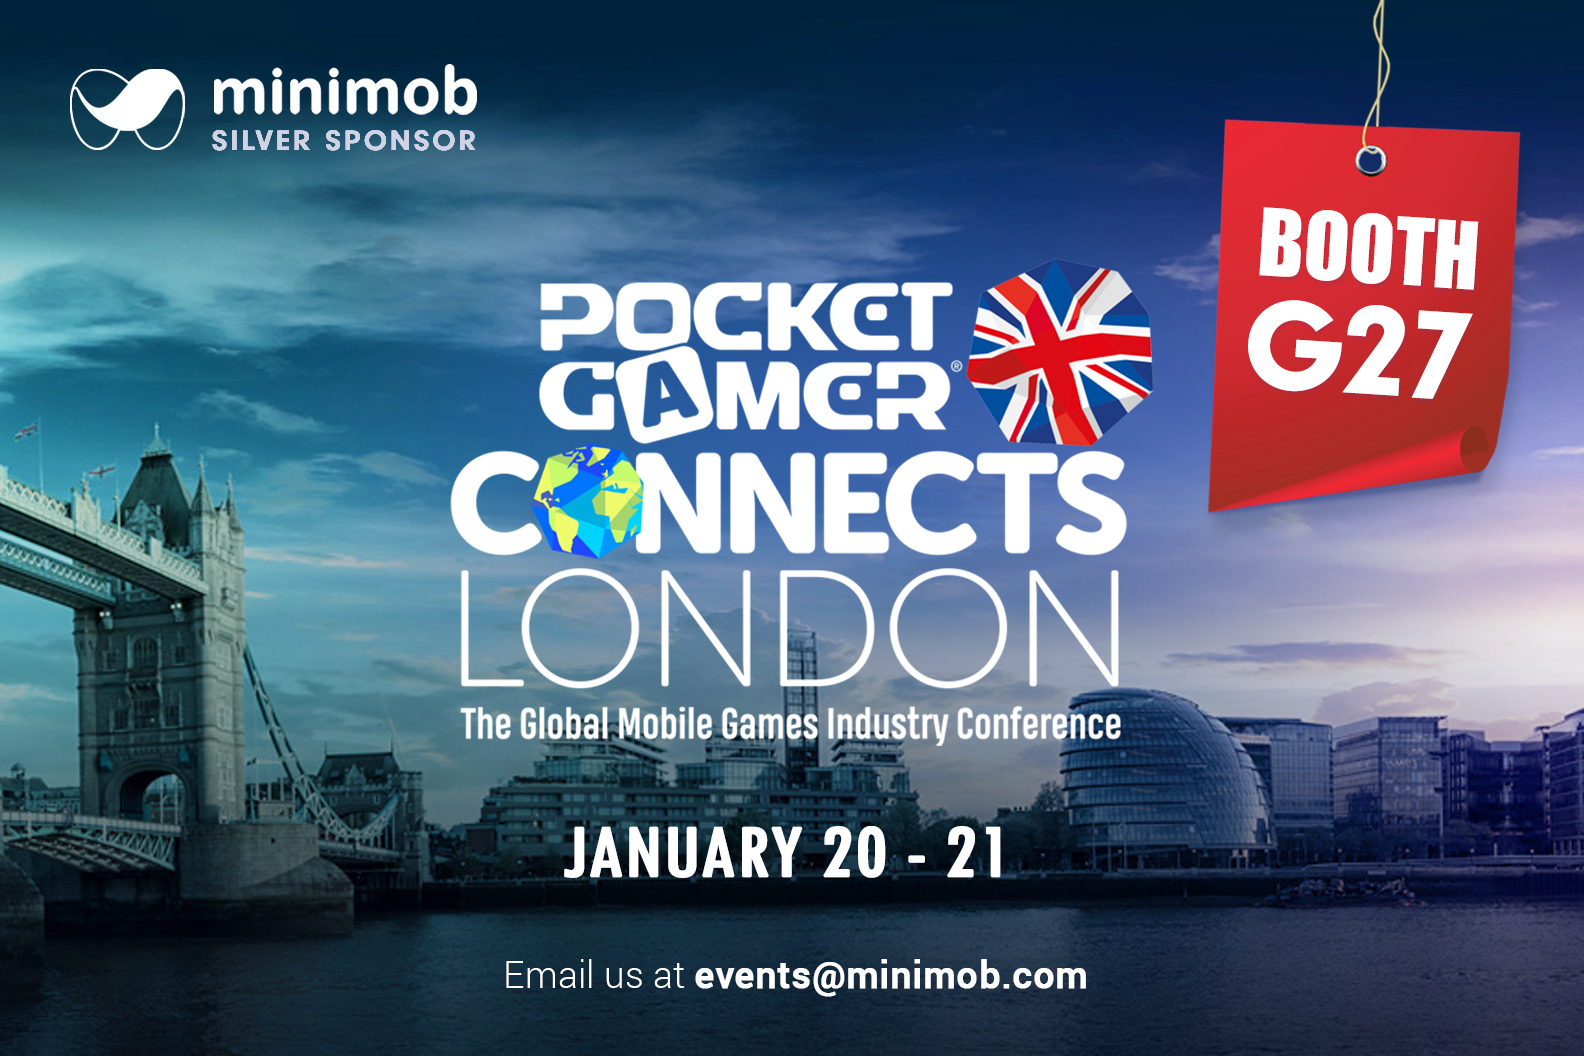 Minimob exhibits & sponsors @ POCKET GAMER Connects London, UK